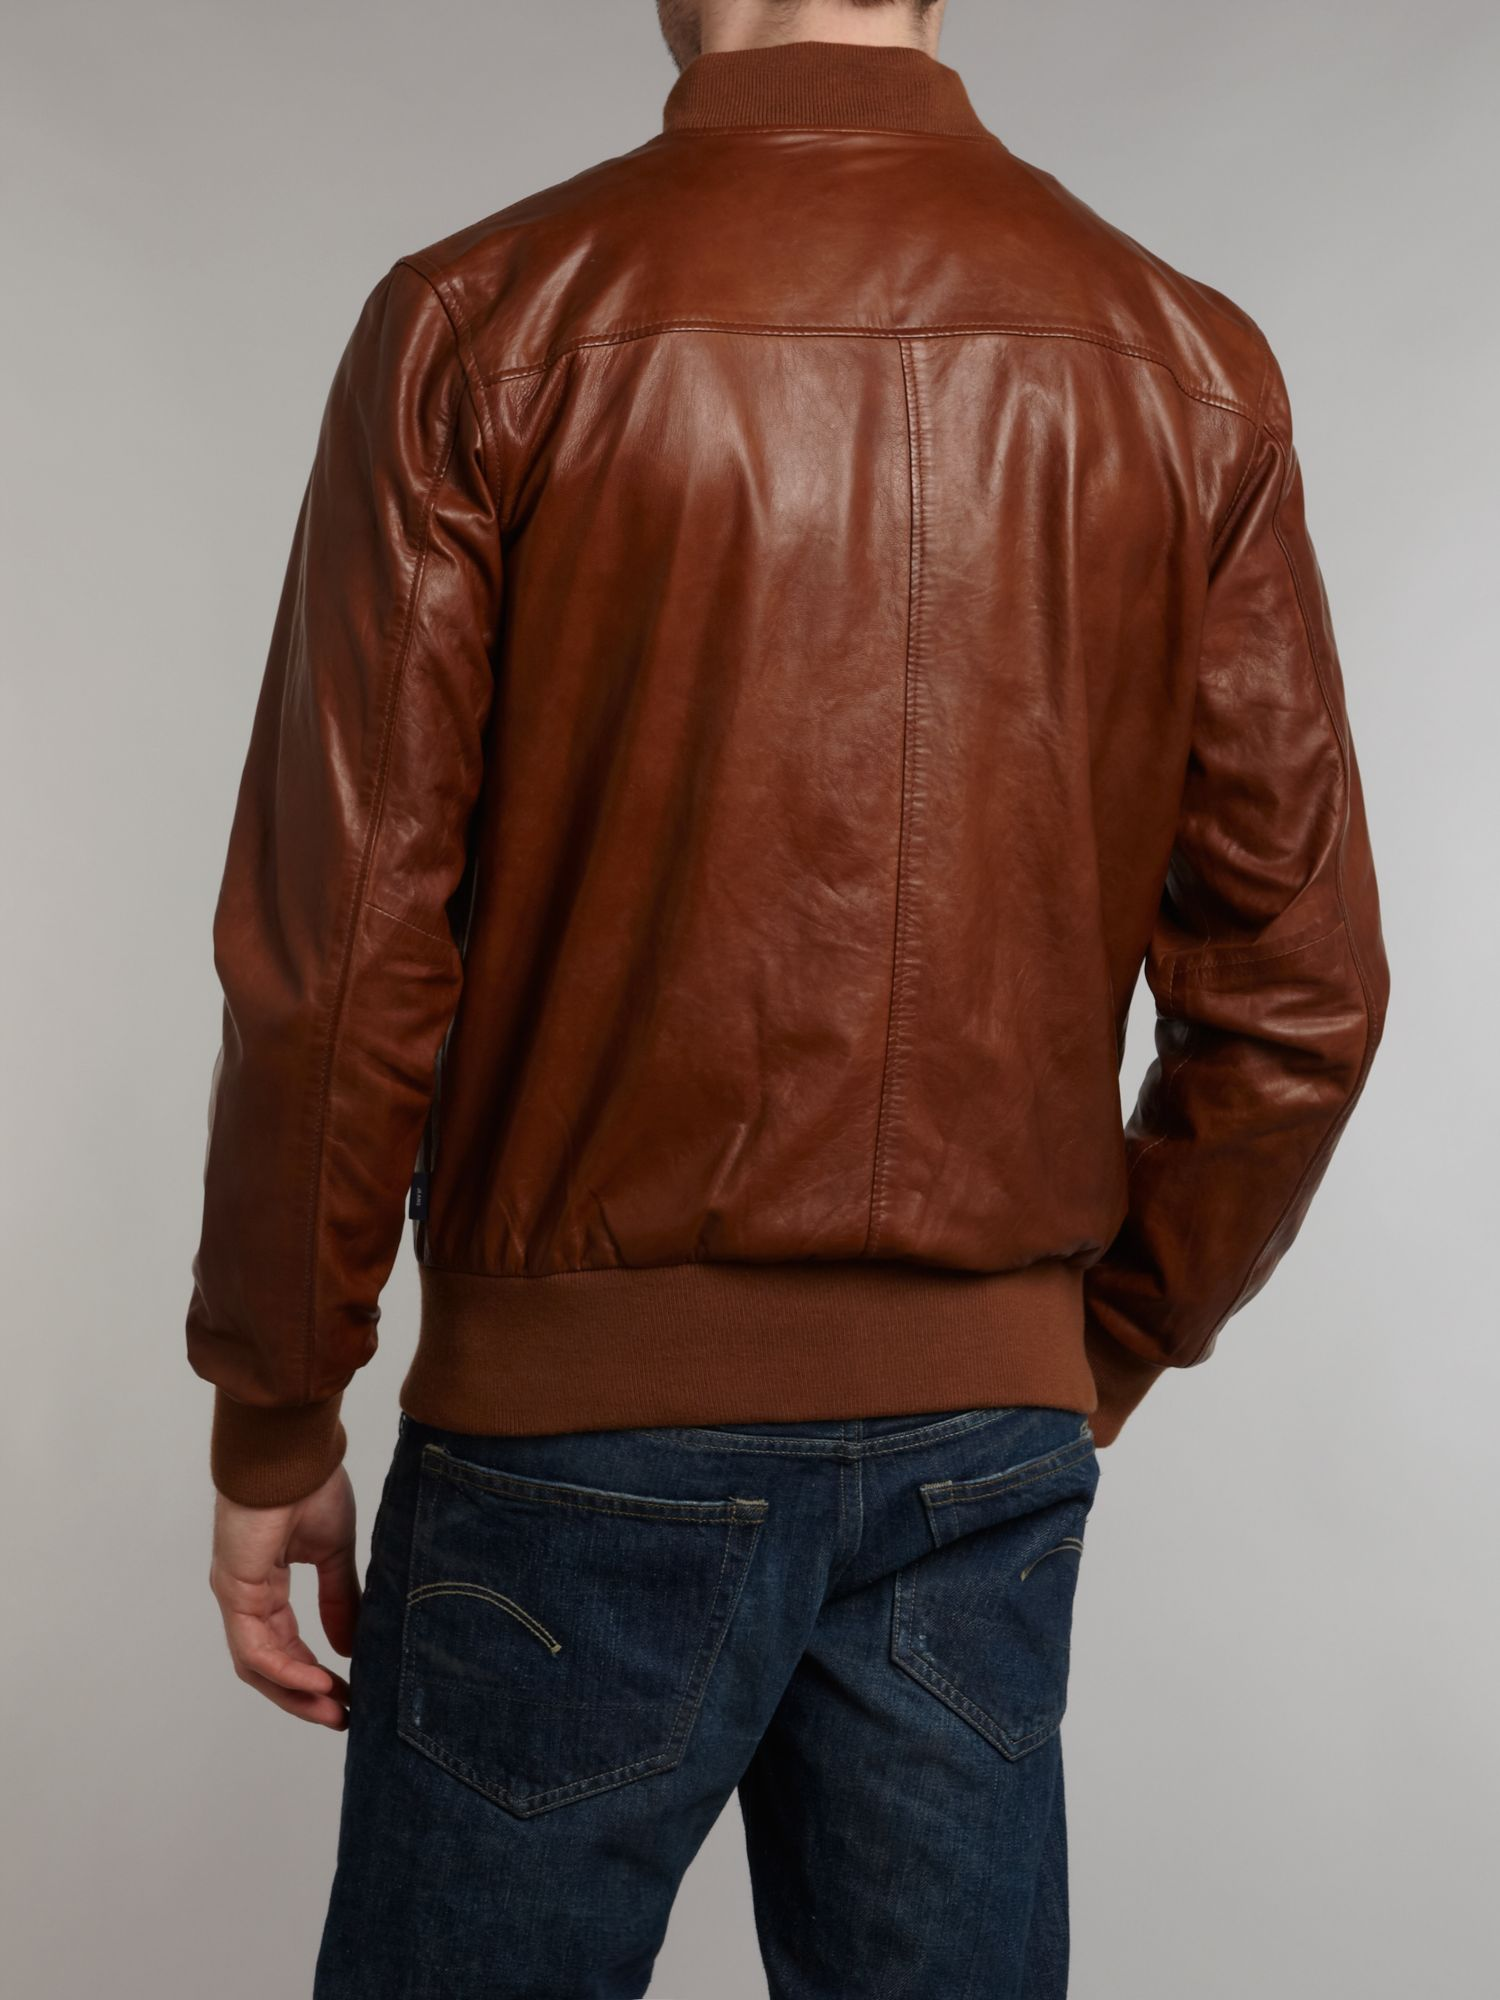 Paul Smith Leather Bomber Jacket in Tan (Brown) for Men